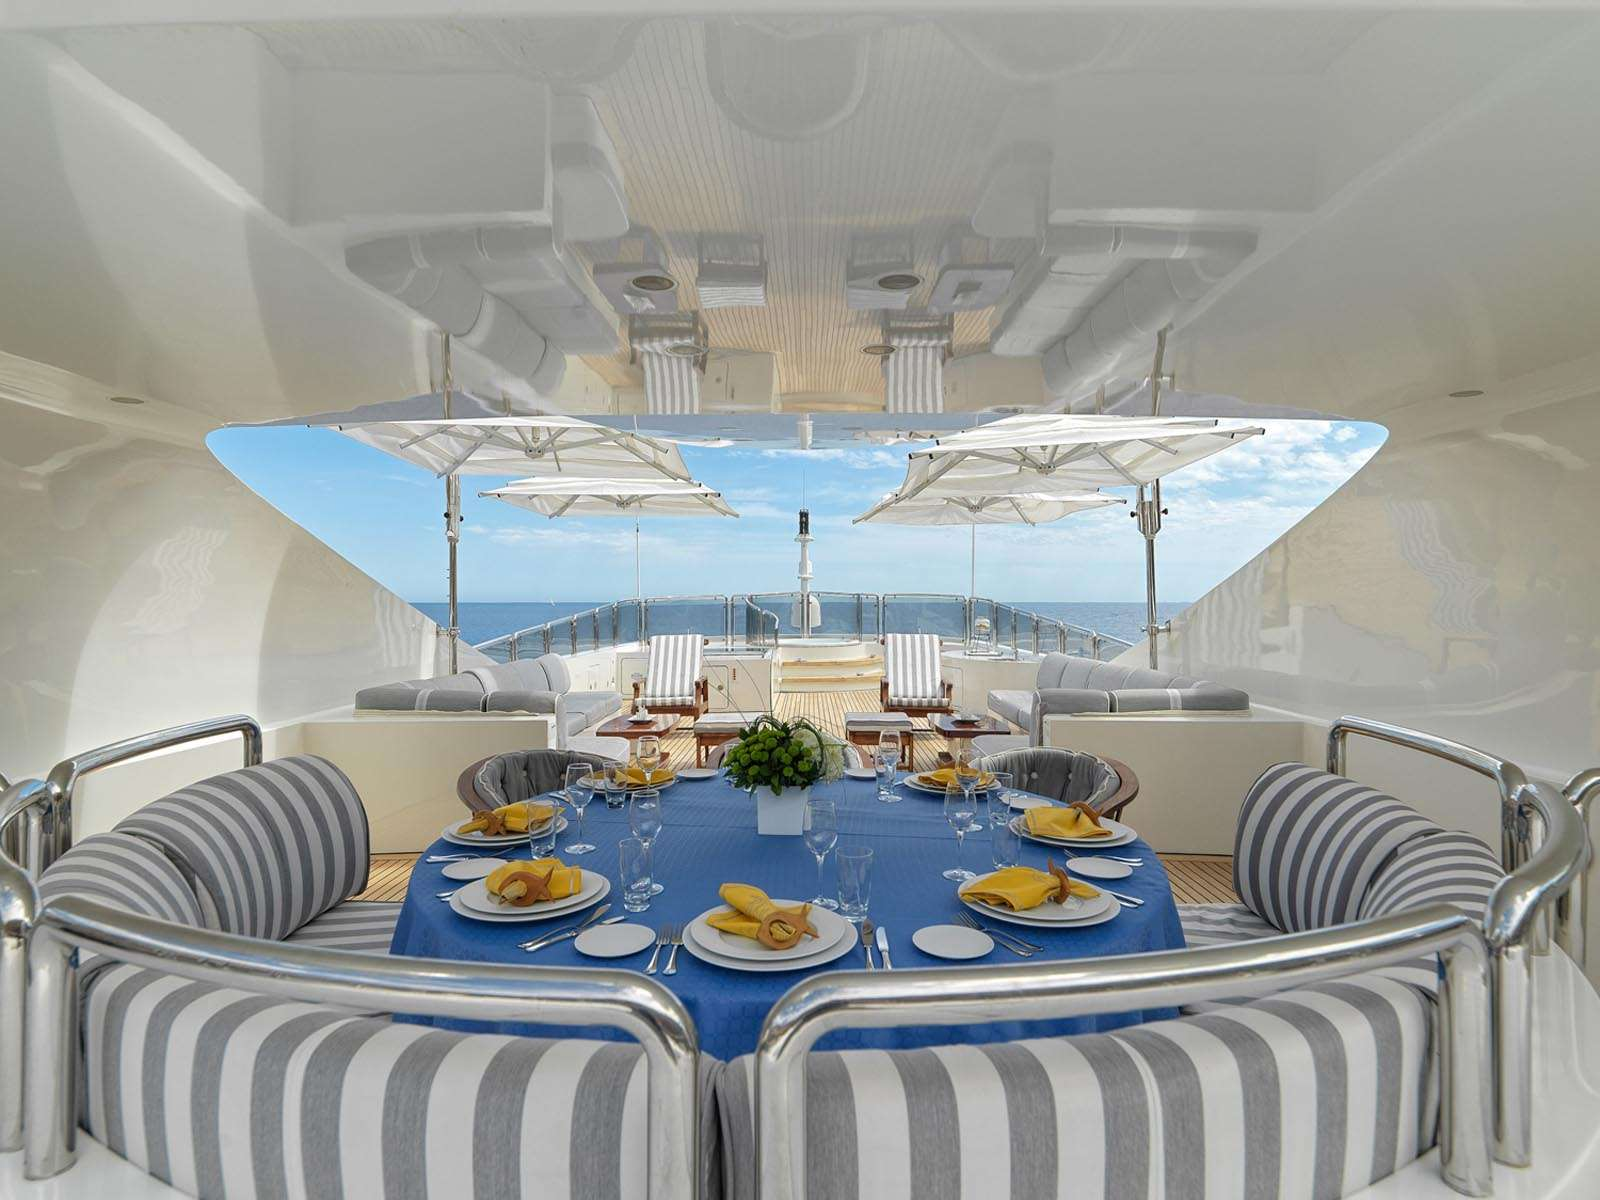 Upper deck dining